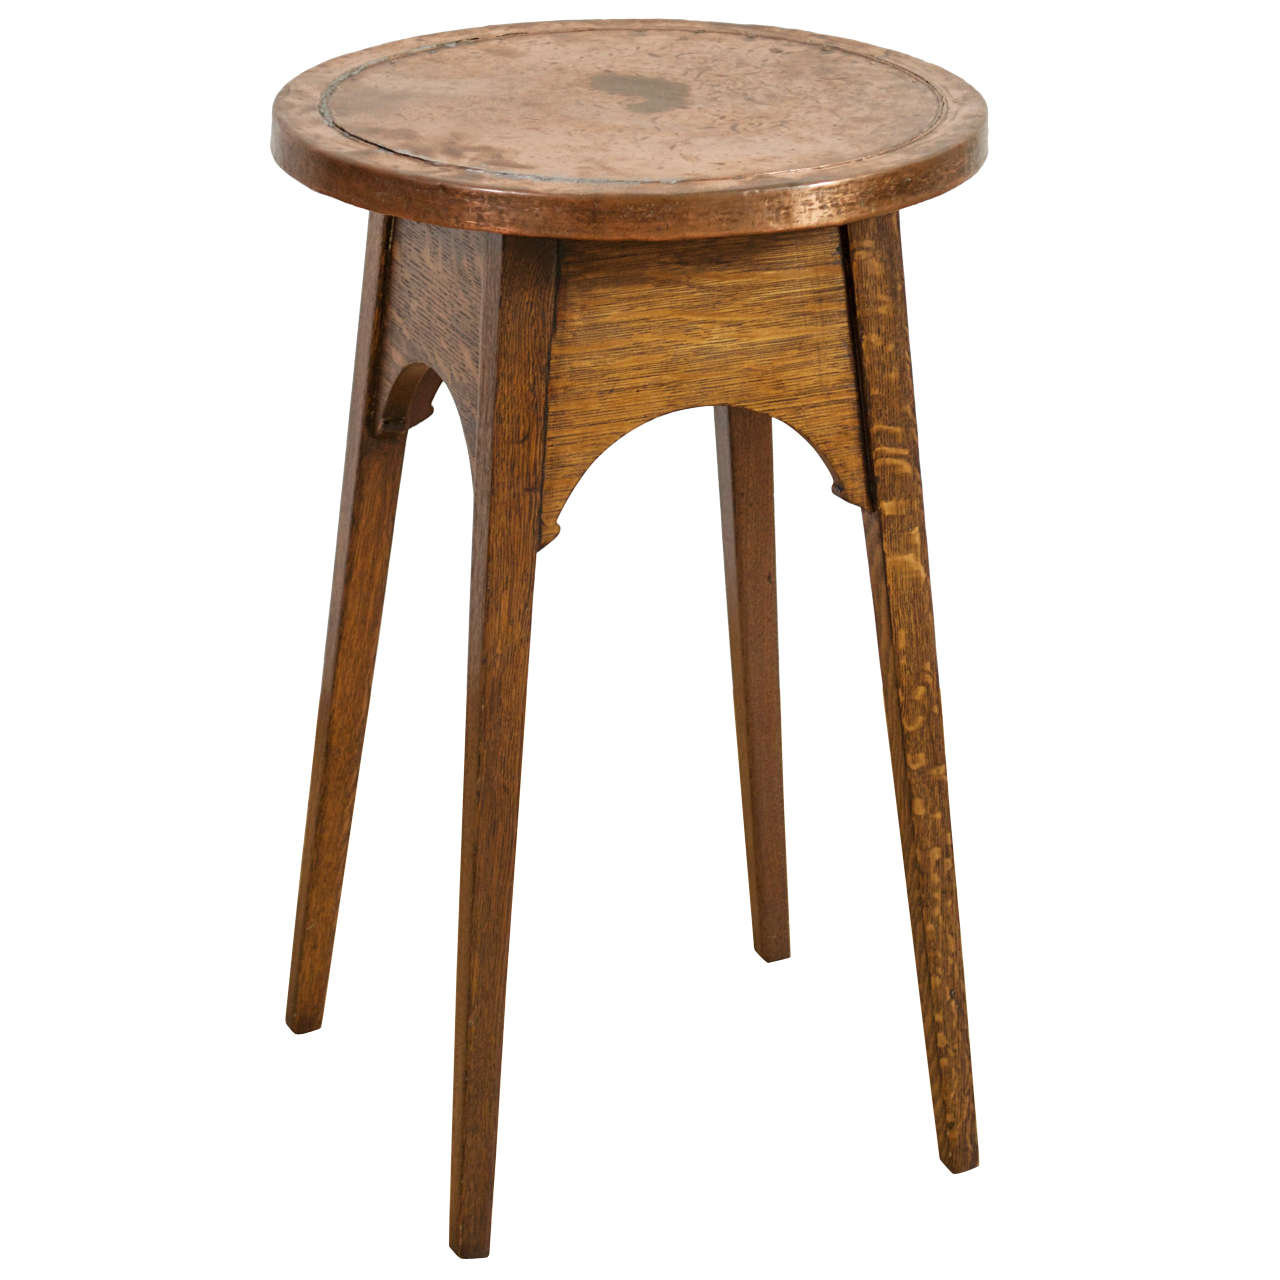 Stickley Brothers quotLucky Pennyquot Drink Stand For Sale at  : X from www.1stdibs.com size 1280 x 1280 jpeg 83kB